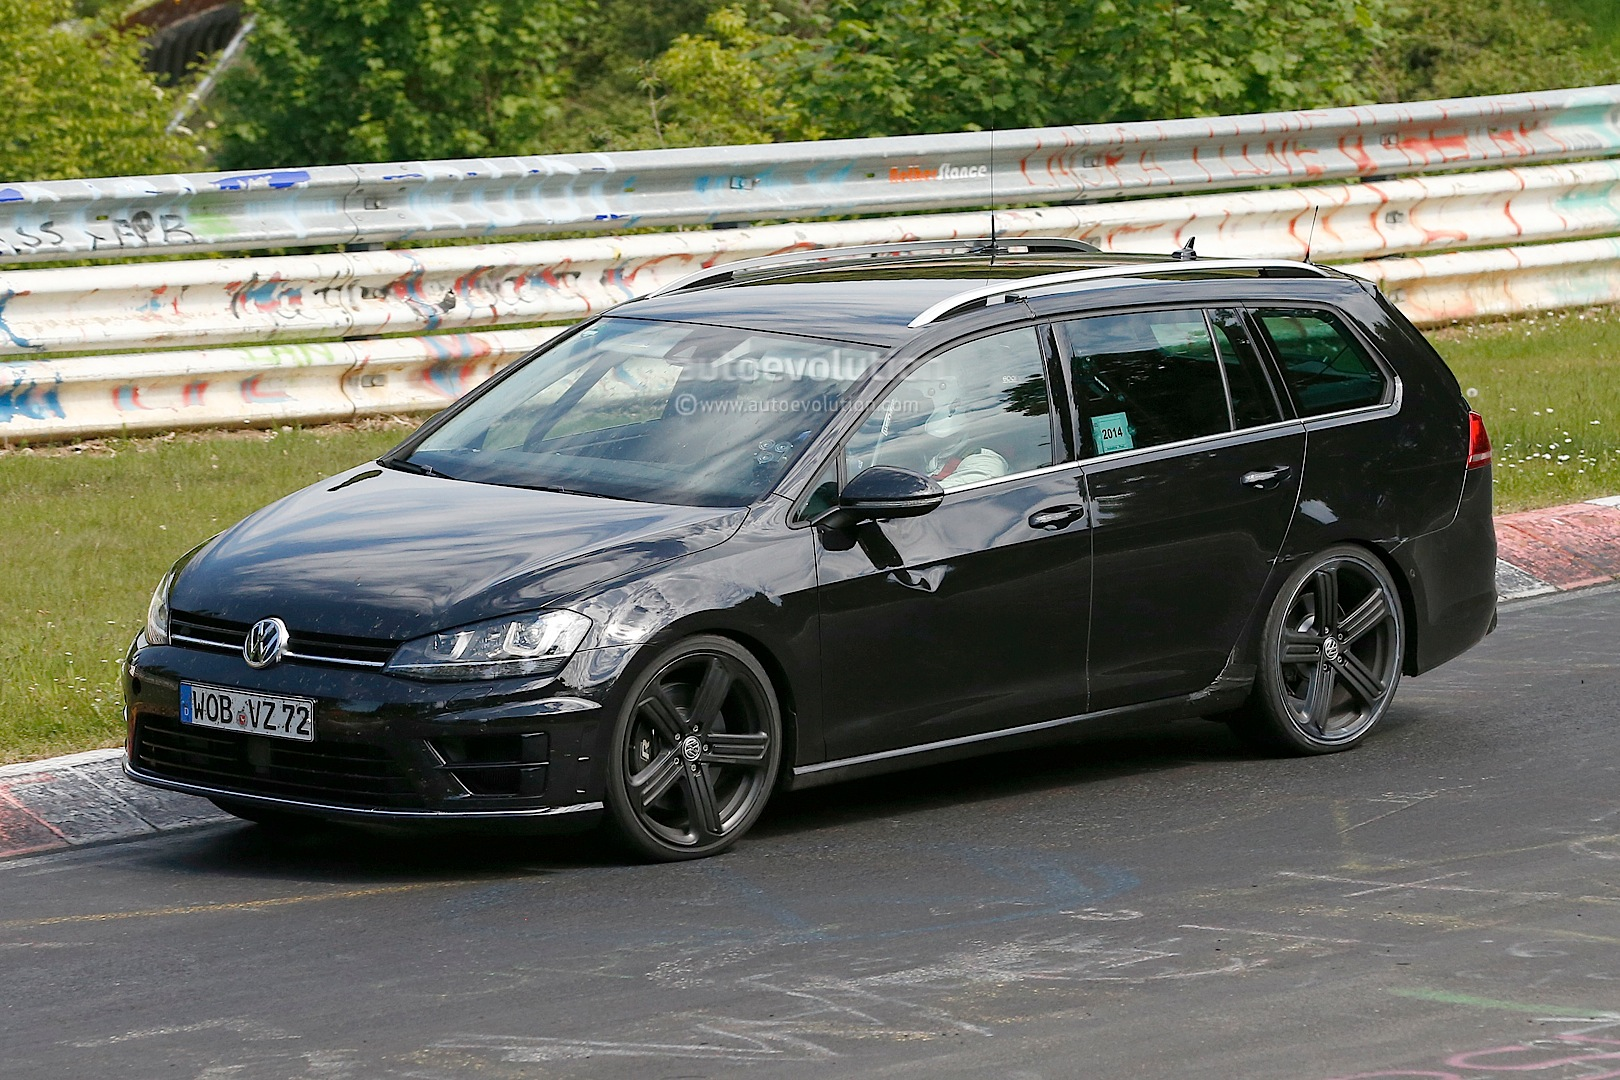 Second Golf R Estate Prototype Spotted with Quad Exhaust - autoevolution